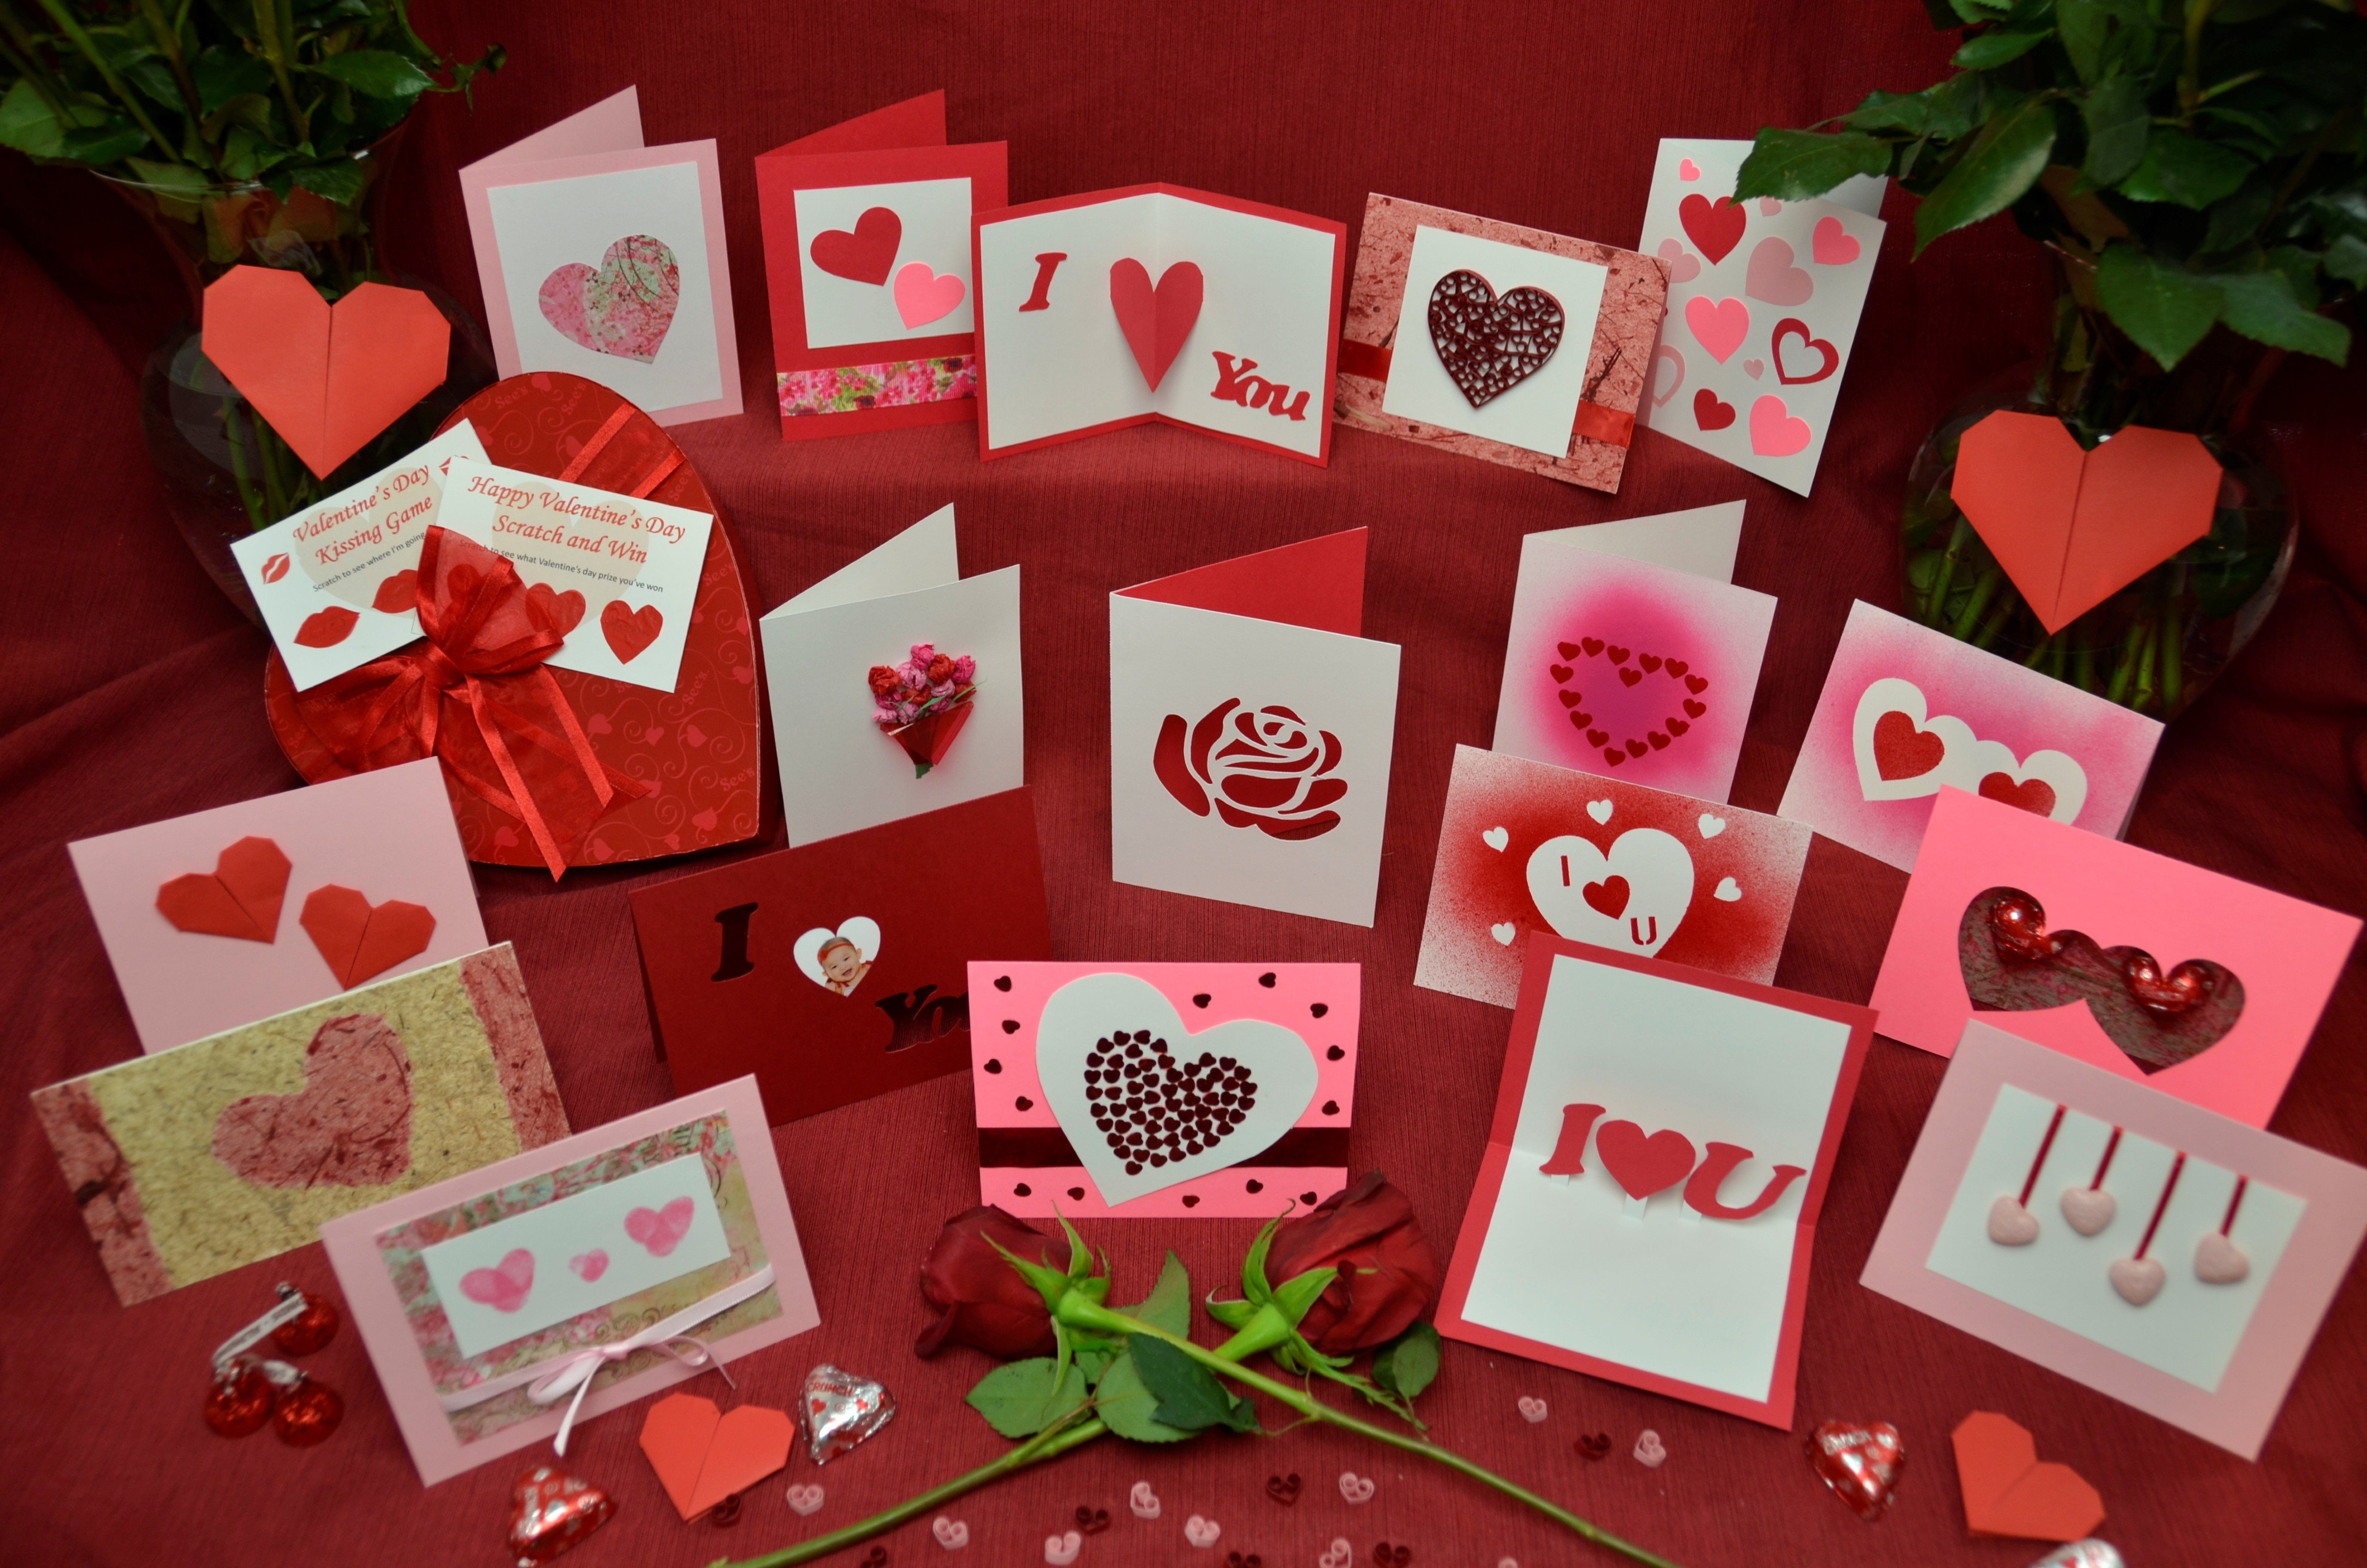 10 Awesome Creative Ideas For Valentines Day For Him top 10 ideas for valentines day cards creative pop up cards 14